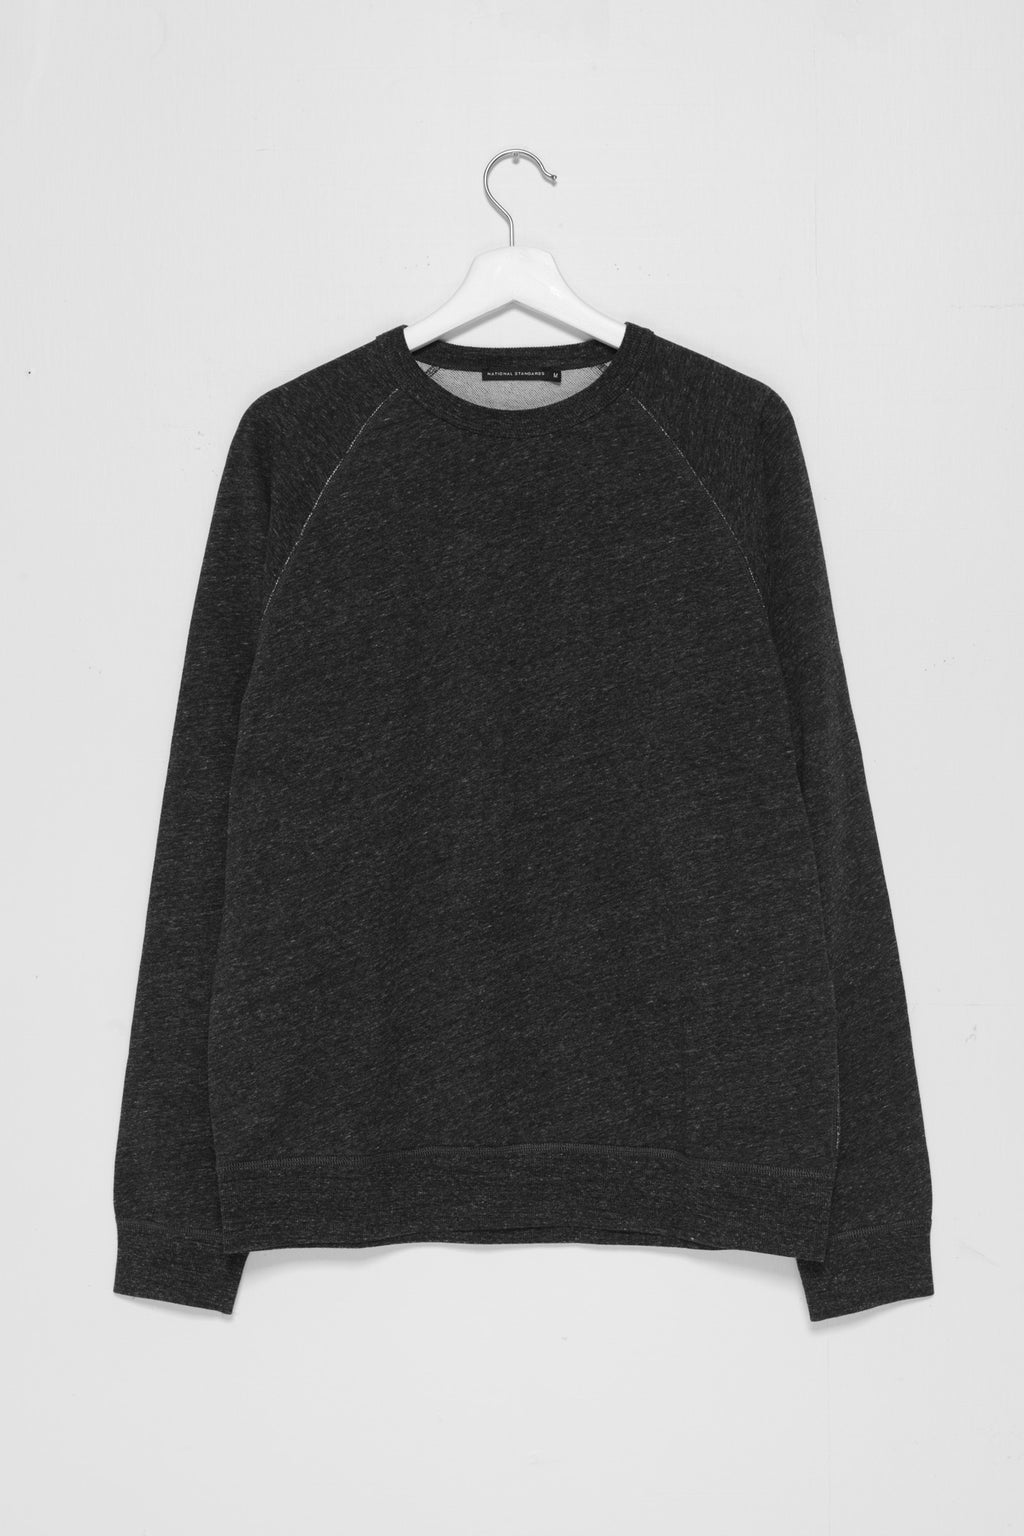 250g French Terry Raglan in Melange Black